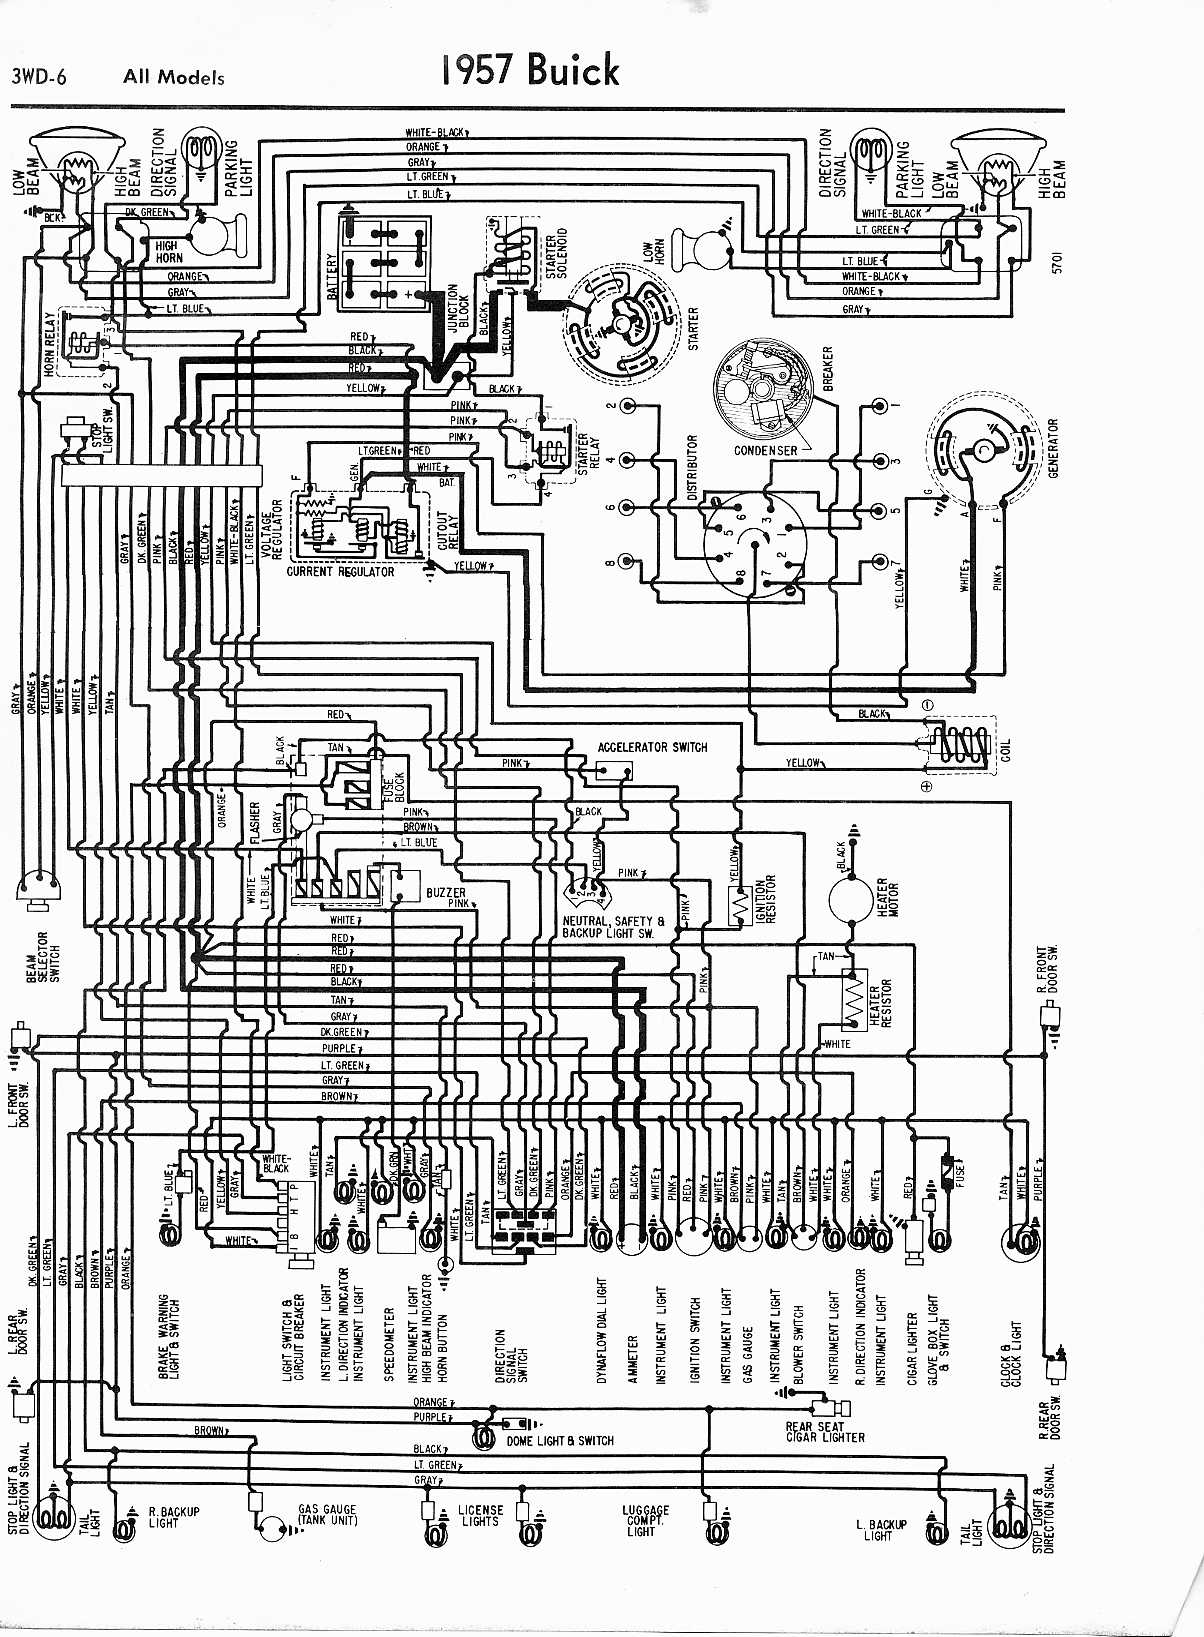 buick wiring diagram wiring diagrams online buick wiring diagrams 1957 1965